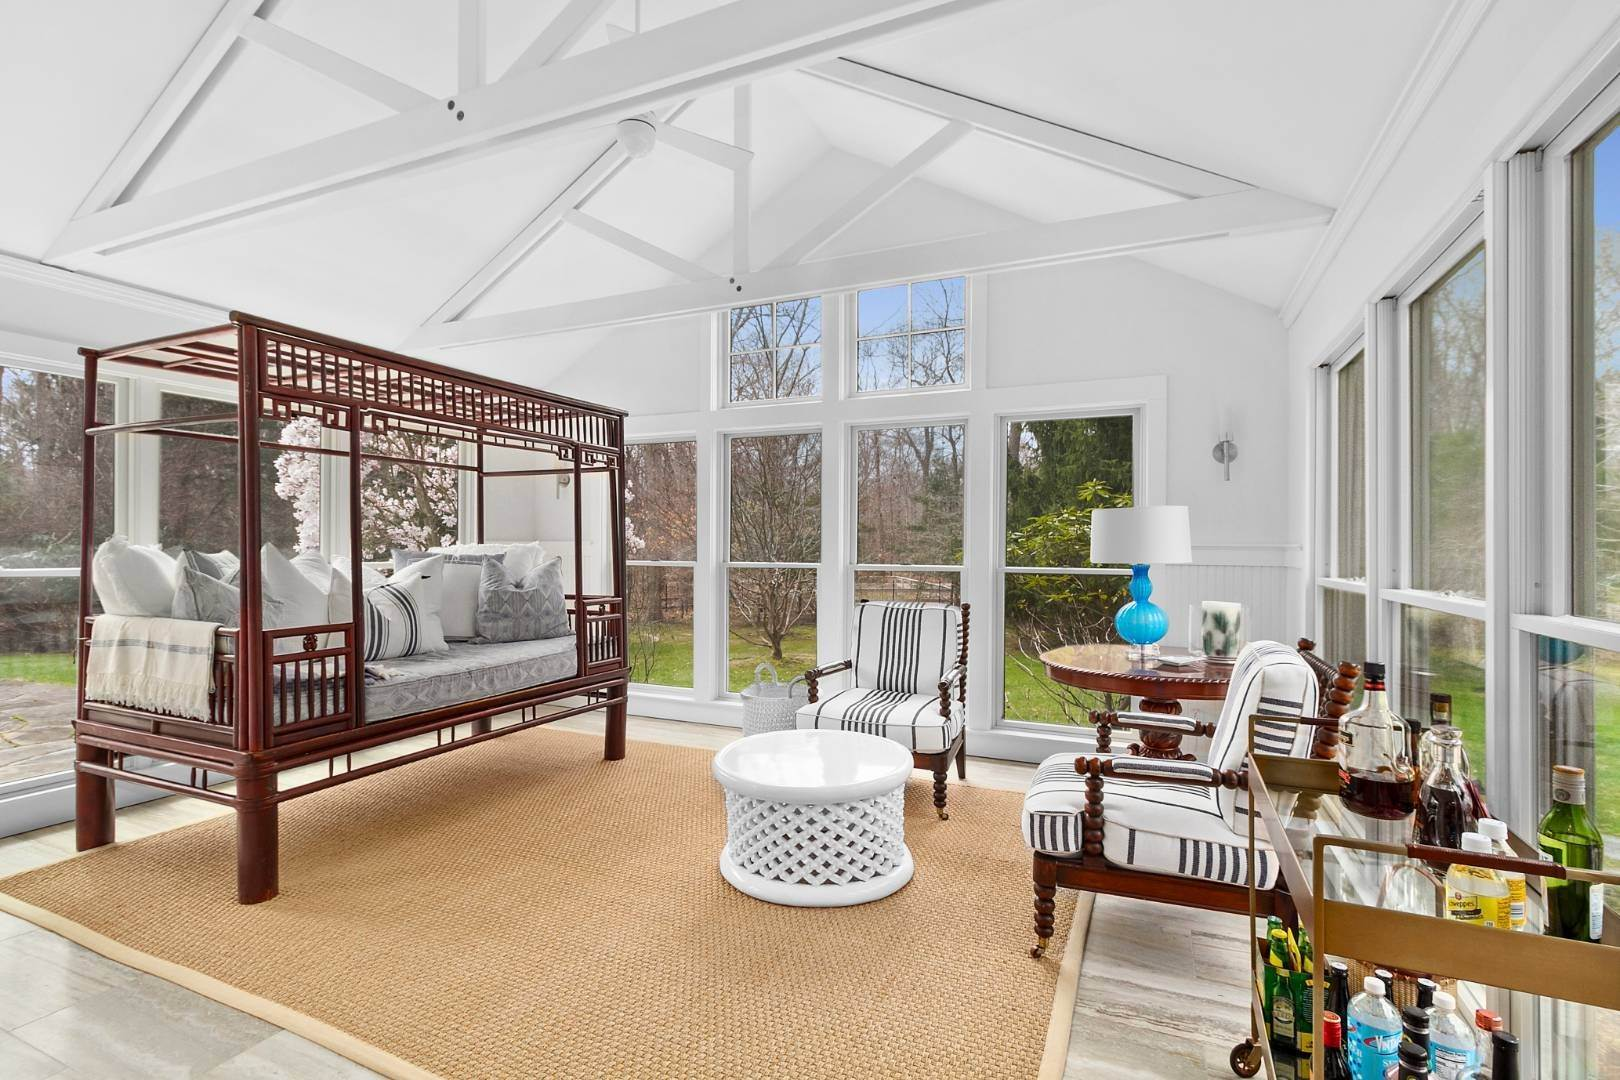 17. Single Family Home for Sale at Historic Springs Two-House Compound 104 Old Stone Hwy, East Hampton, NY 11937